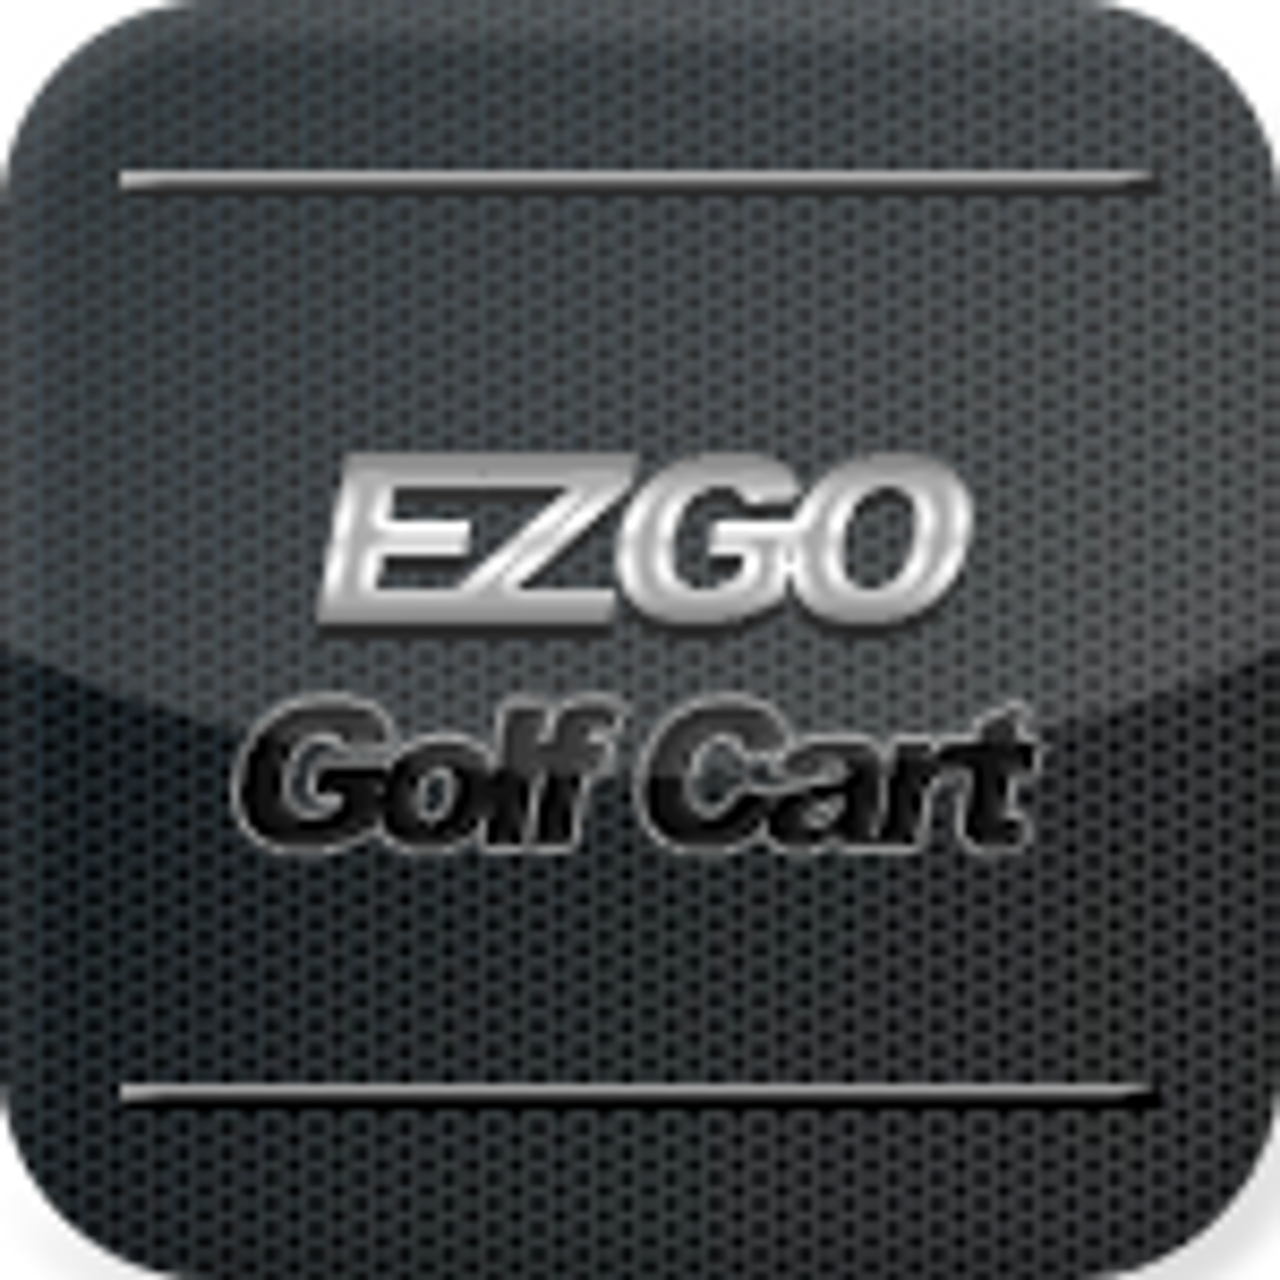 EZGO Accelerator Group Parts